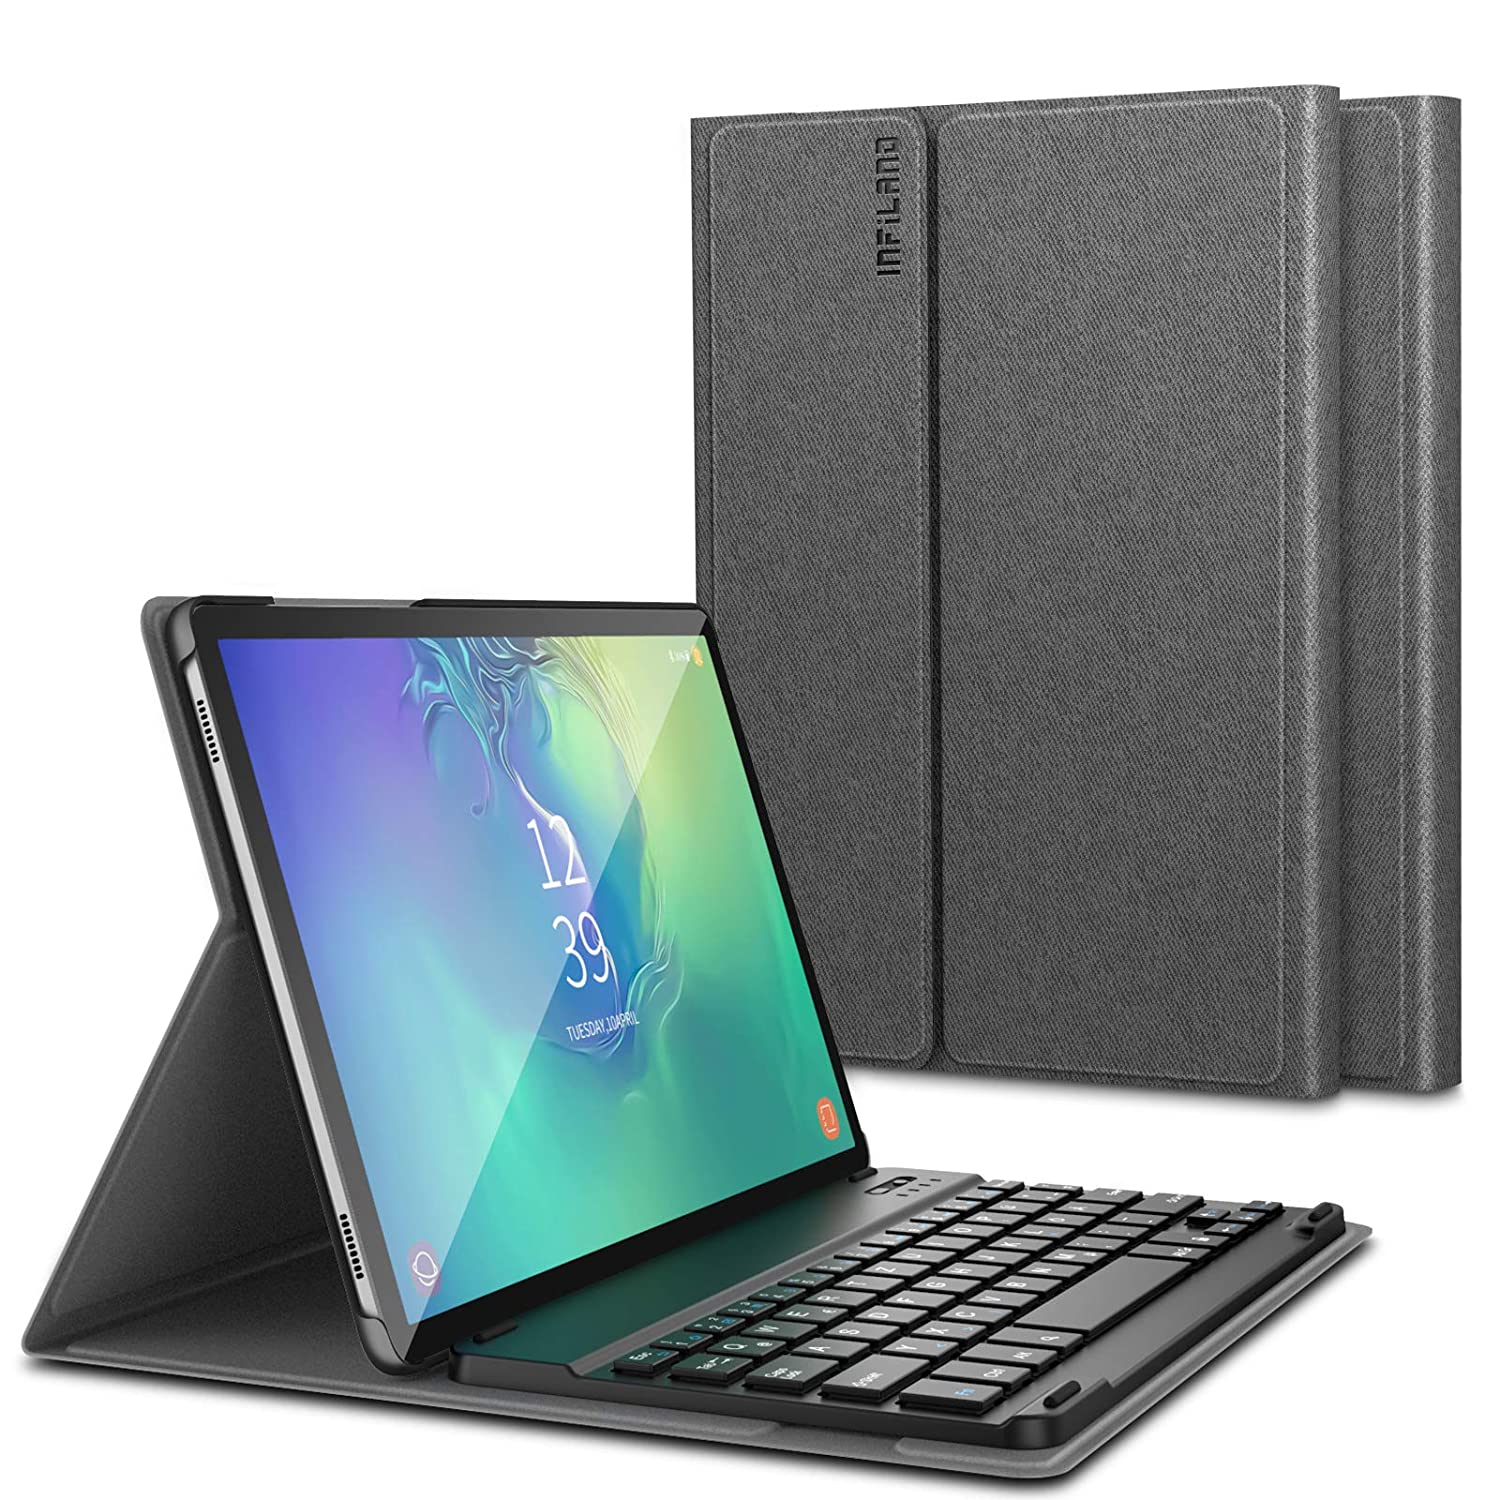 Front Support Case with Detachable Wireless Bluetooth Keyboard compatible with Samsung Galaxy Tab S6 10.5 inch SM-T860//SM-T865 2019,Black Infiland keyboard for Samsung Galaxy Tab S6 10.5